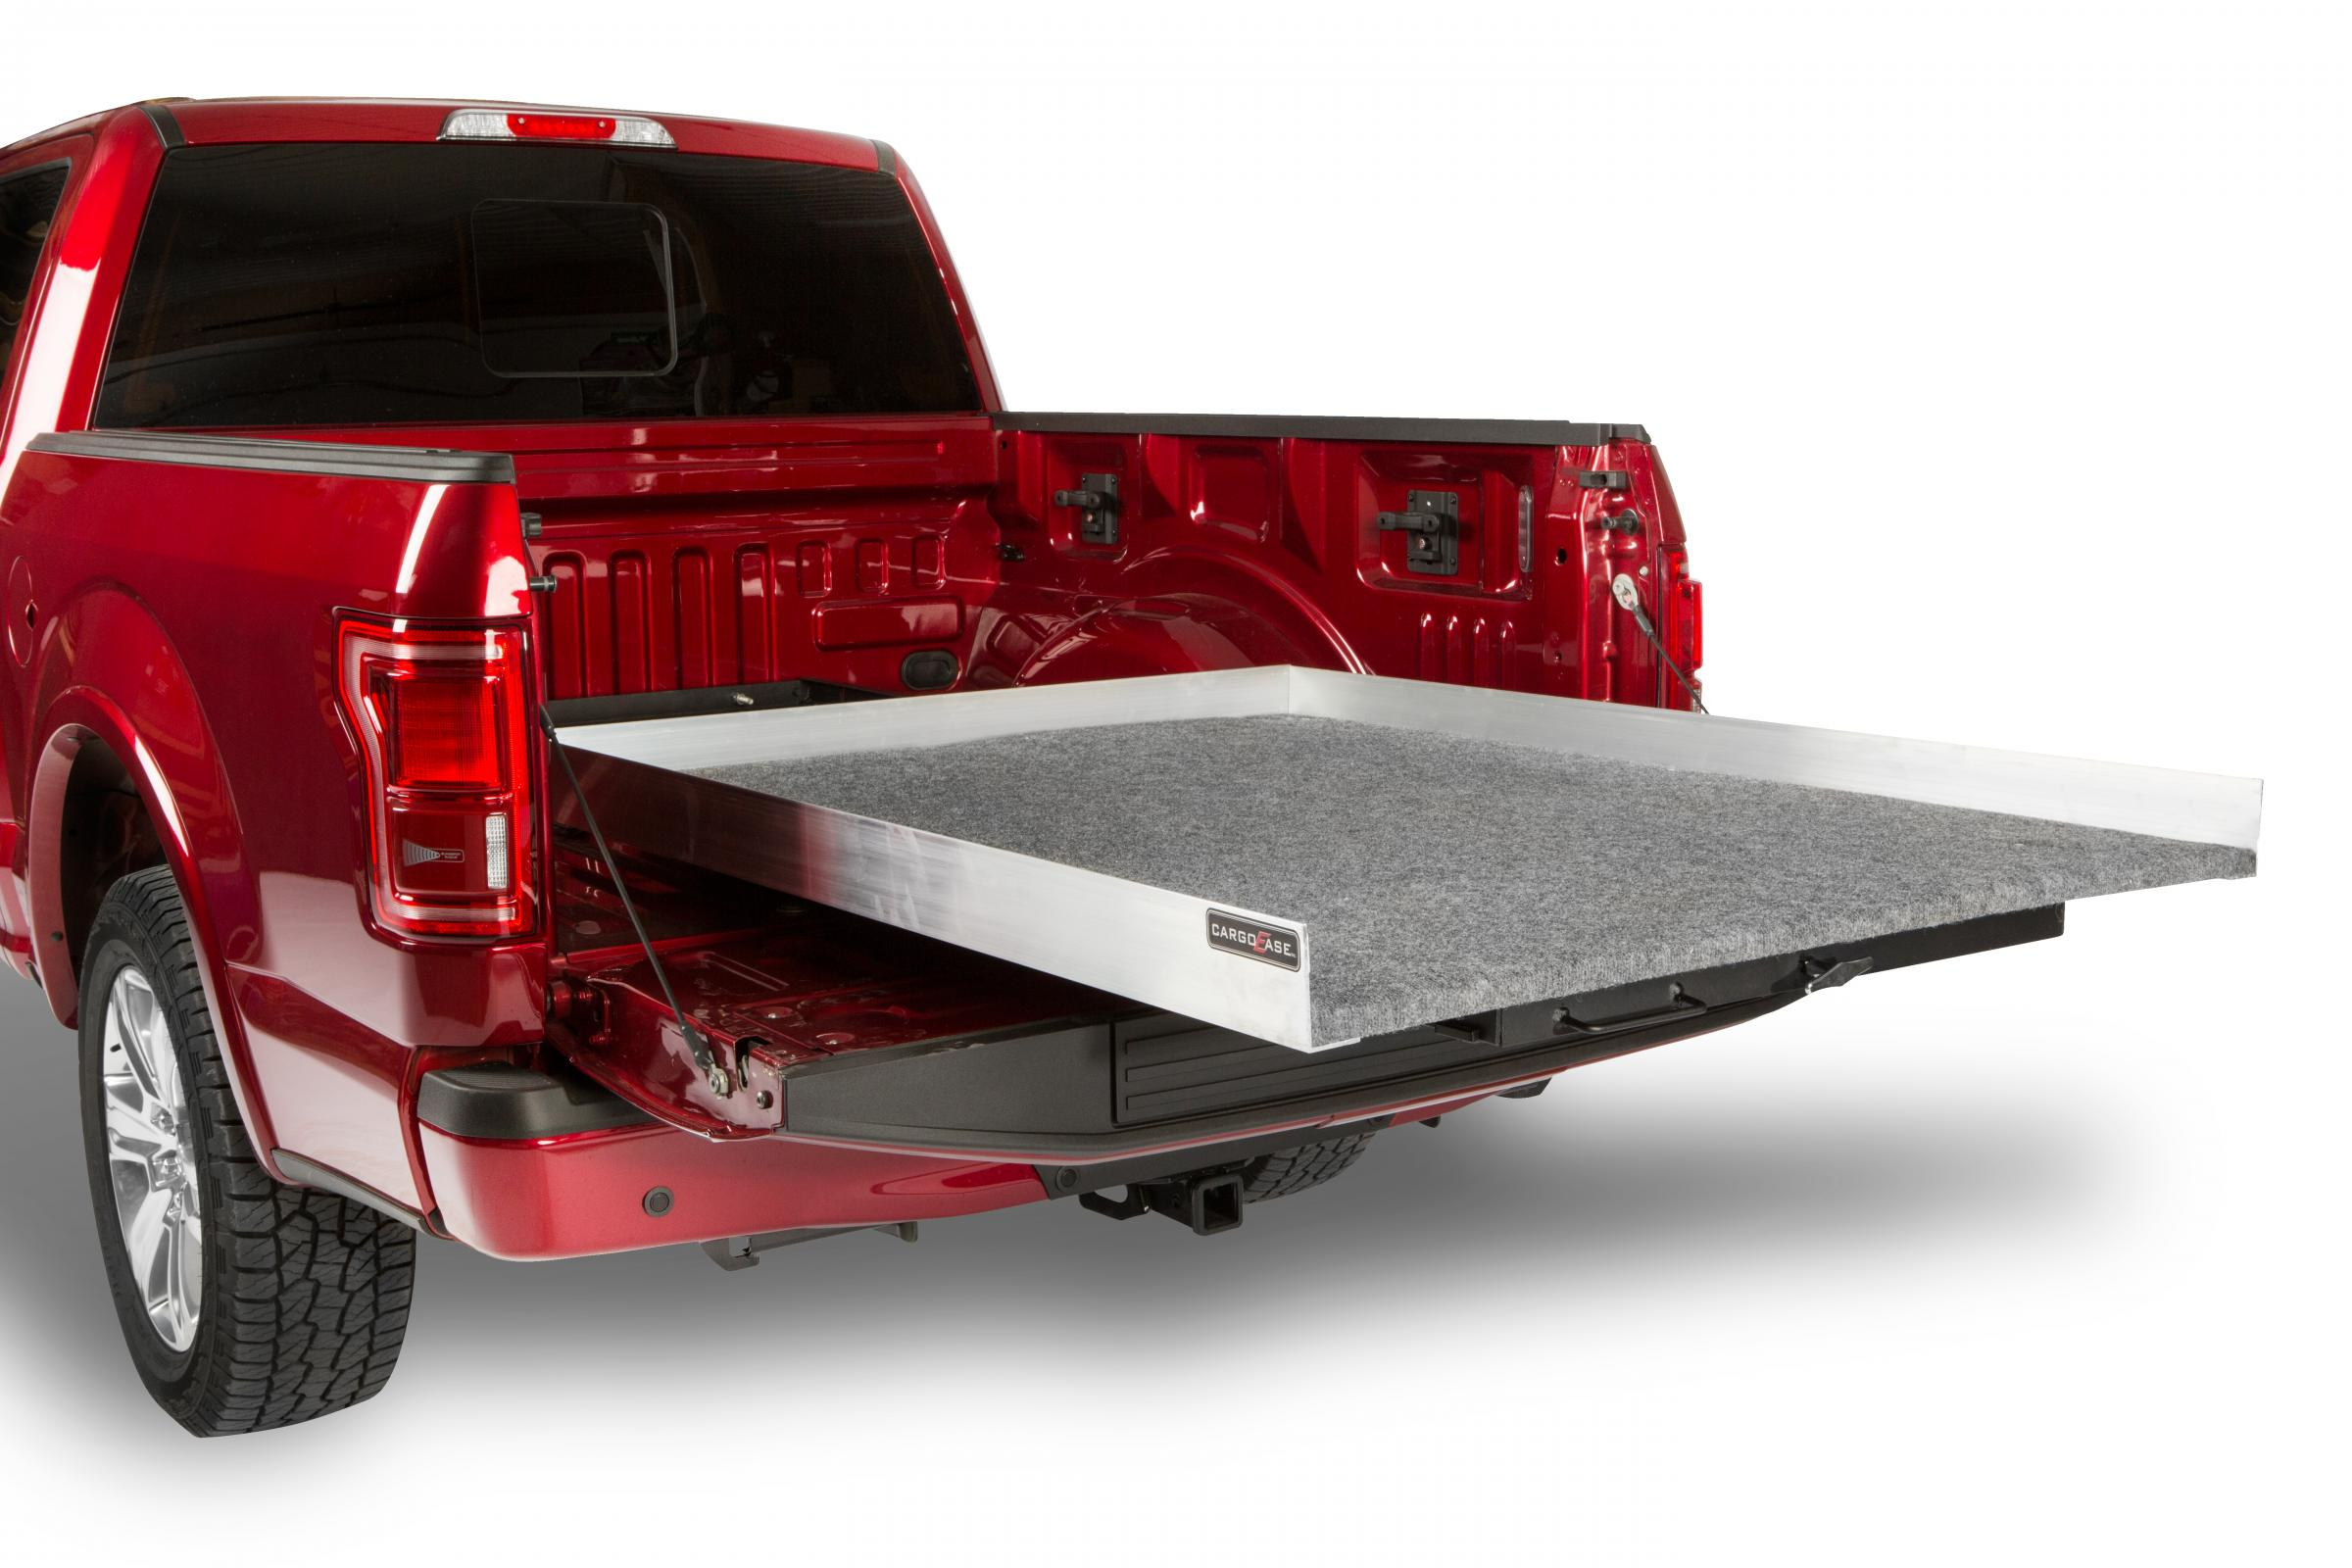 CE7548 Cargo Ease Bed Slide 1200 Pound Capacity